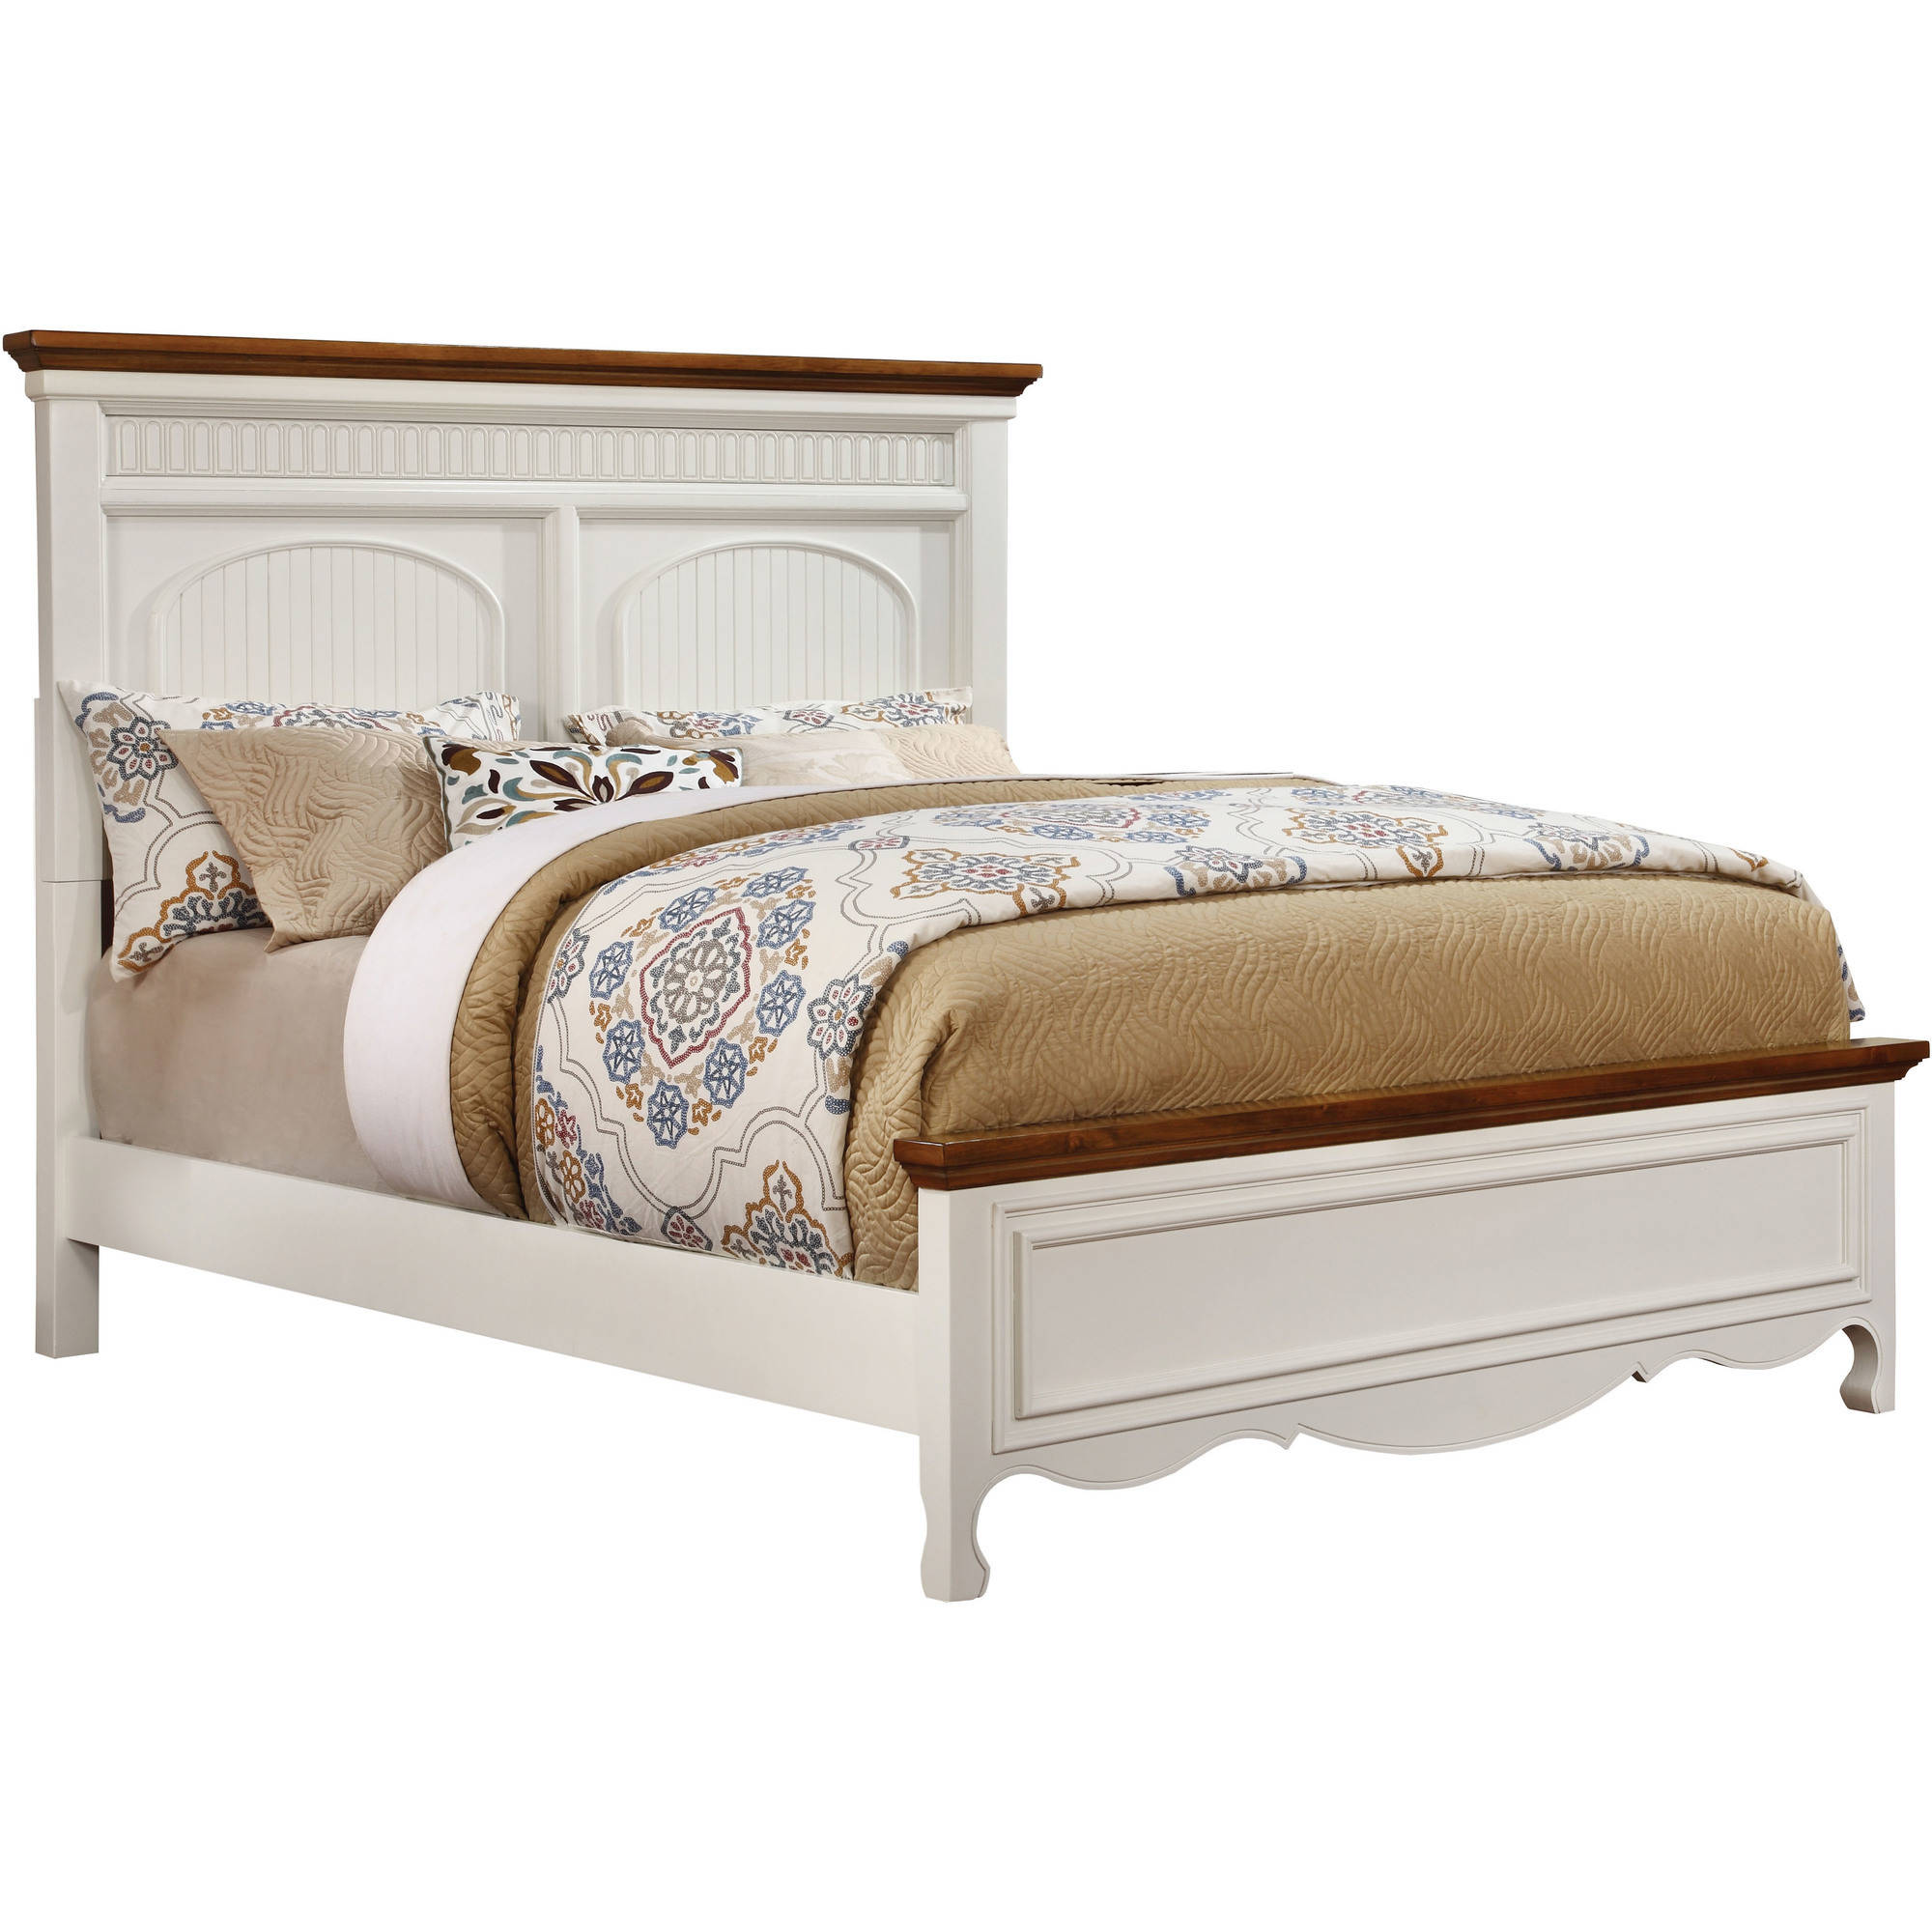 Furniture of America Dolly Cottage Style California King Bed Set, White & Oak